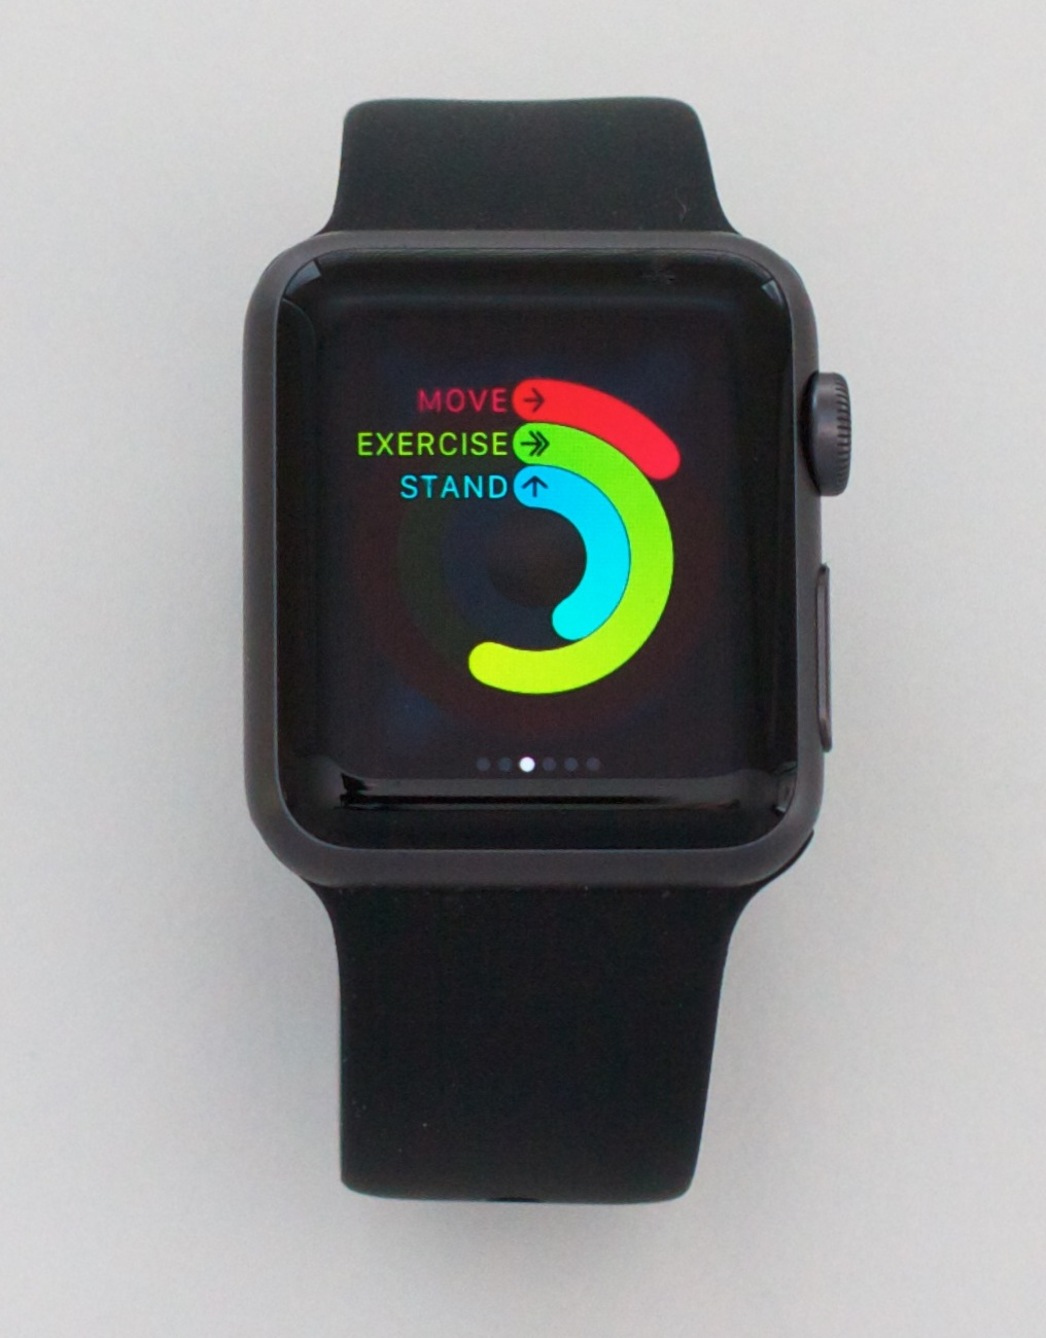 Apple Watch Exercise Ring